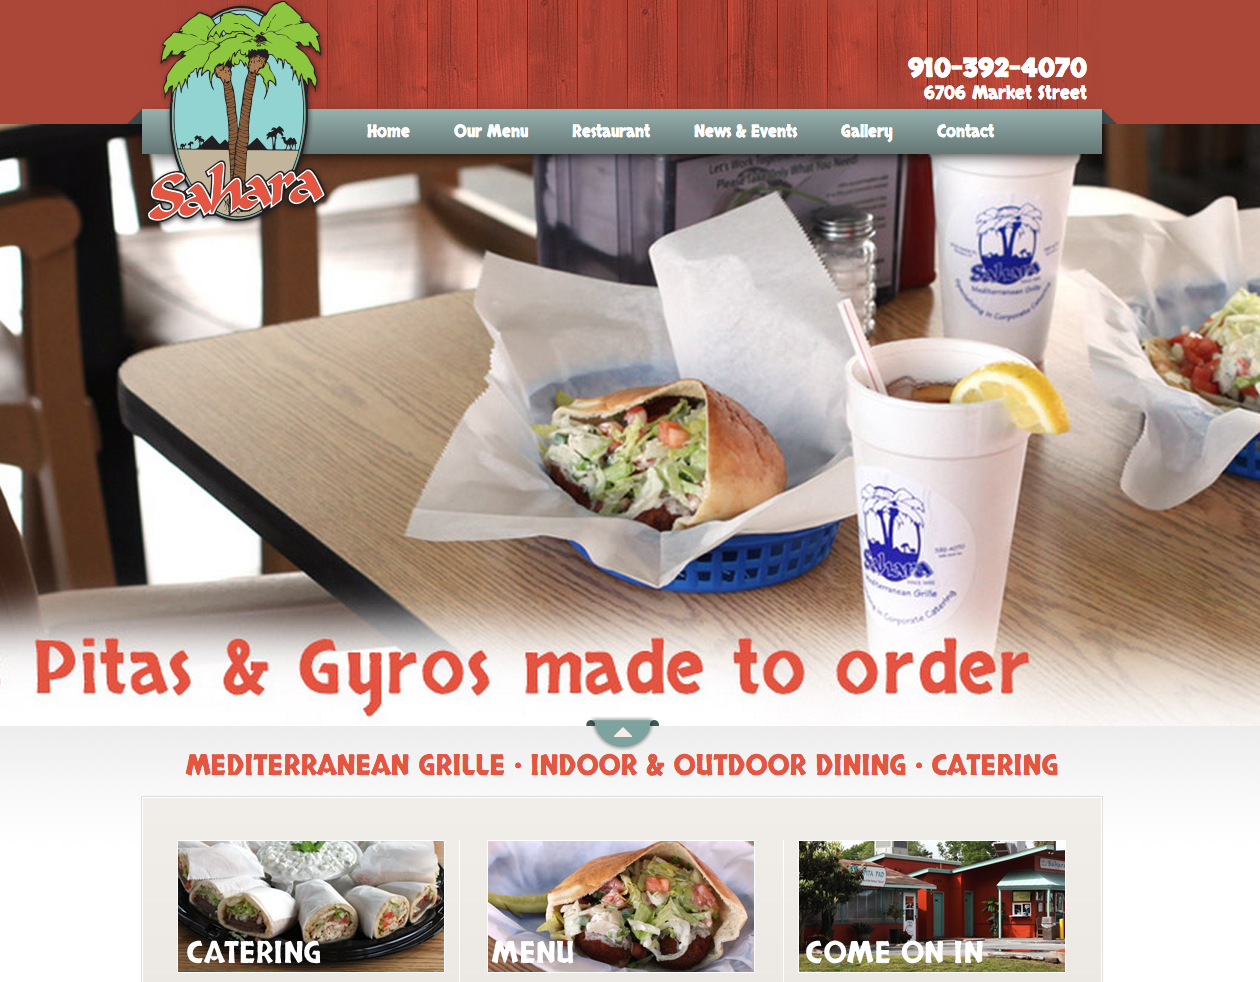 Sahara Pitas and Subs Website Development by Sage Island